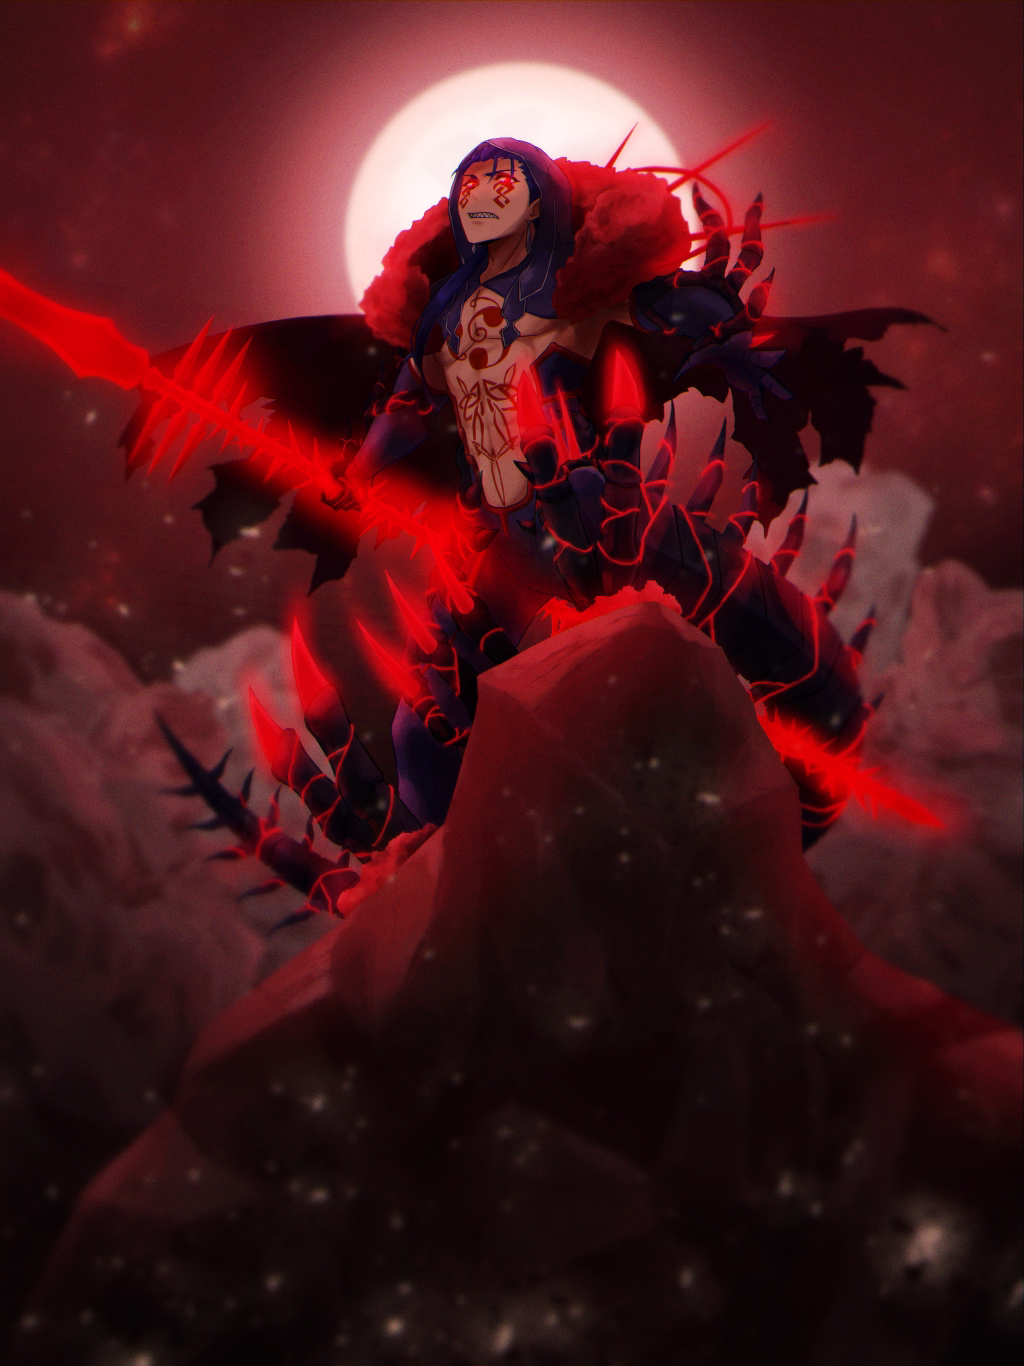 1boy abs angry black_gloves black_pants blue_hair bodypaint bulge cape claws closed_mouth cu_chulainn_(fate)_(all) cu_chulainn_alter_(fate/grand_order) dark_blue_hair dark_persona detached_hood earrings elbow_gloves facepaint fate/grand_order fate_(series) full_moon fur-trimmed_cape fur_trim gae_bolg_(fate) gloves glowing glowing_eyes glowing_weapon highres holding holding_polearm holding_weapon hood hood_up jewelry knee_up long_hair male_focus monster_boy moon moto_u_toe_say muscular muscular_male navel outdoors pants pectorals polearm ponytail red_eyes sharp_teeth shirtless skin_tight solo spikes tail teeth weapon